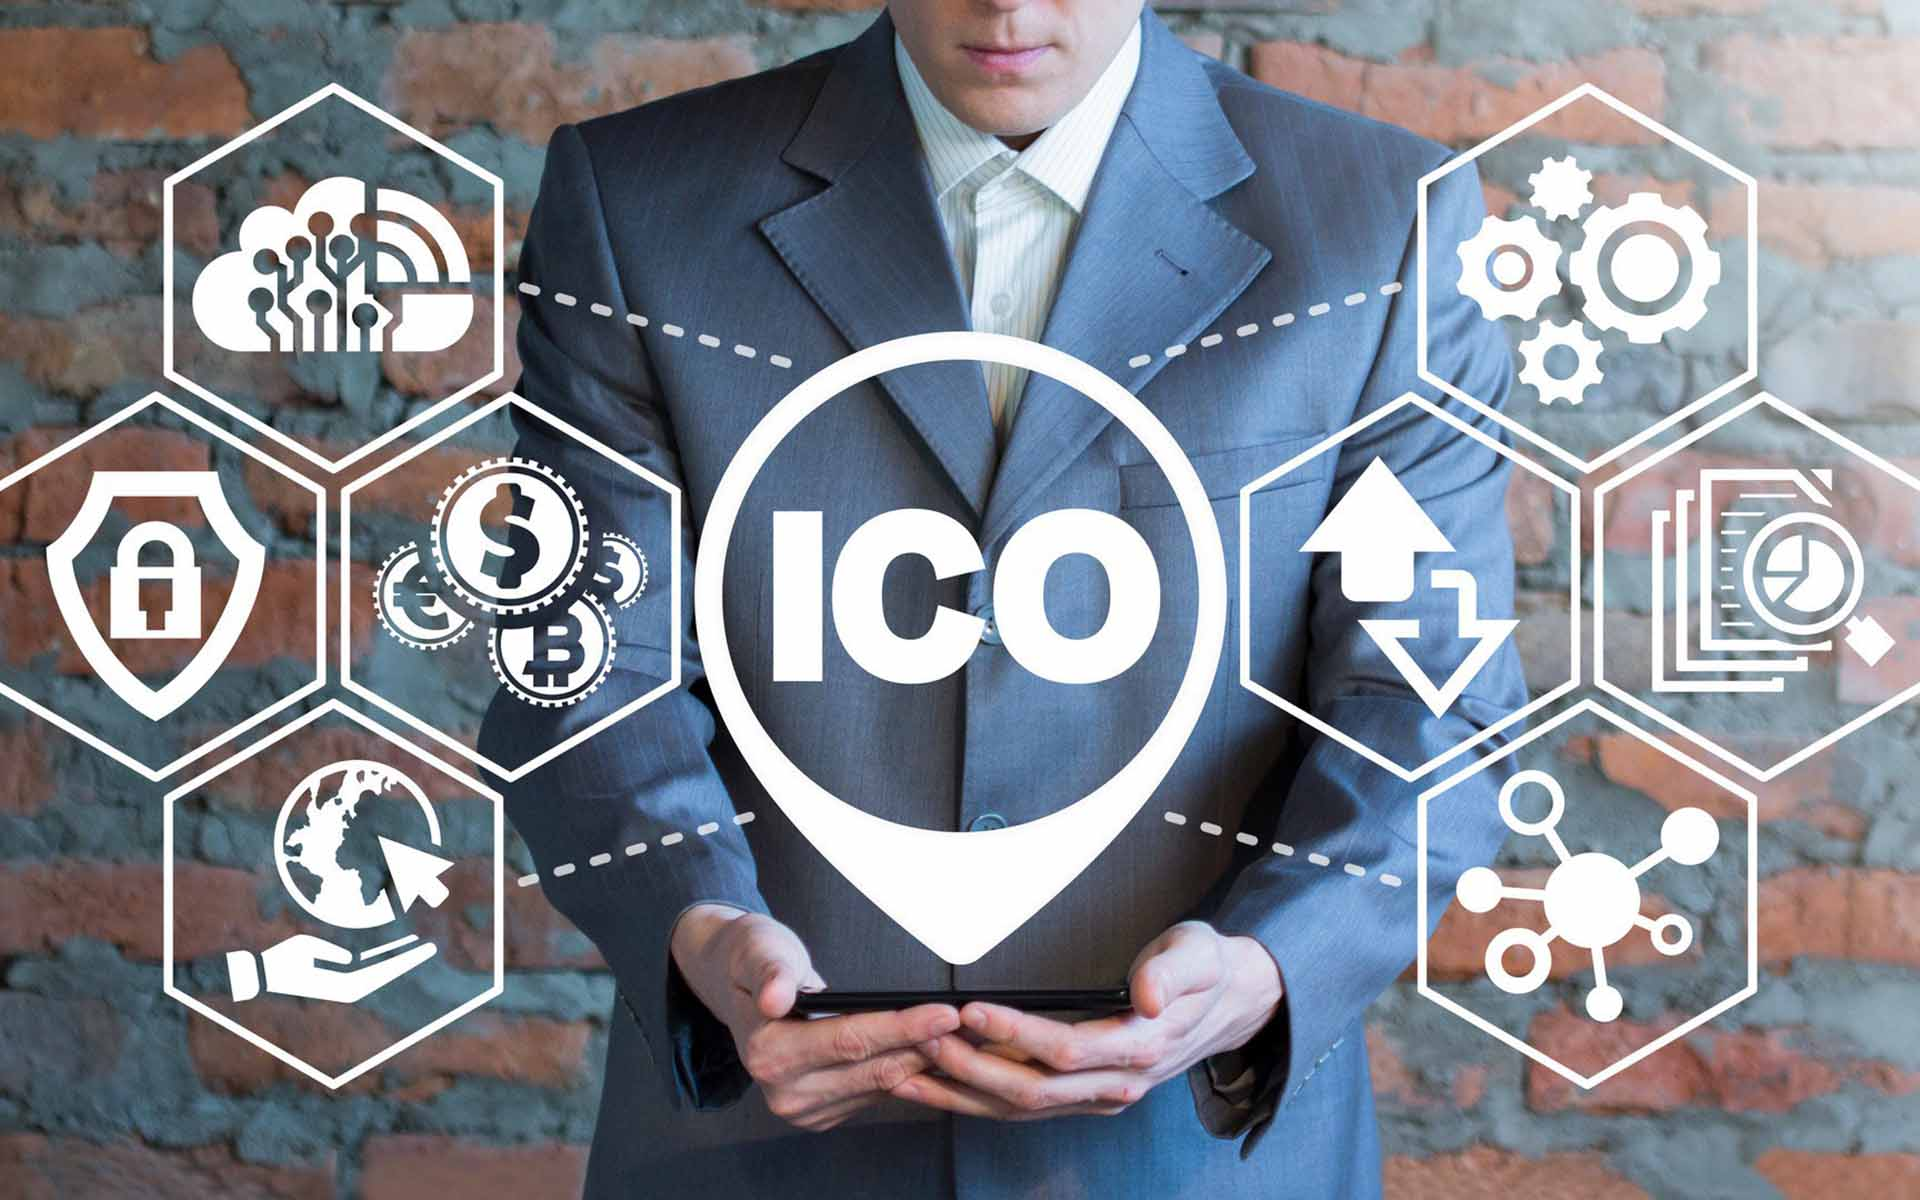 What Resources Are Available to the ICO Marketing Team?